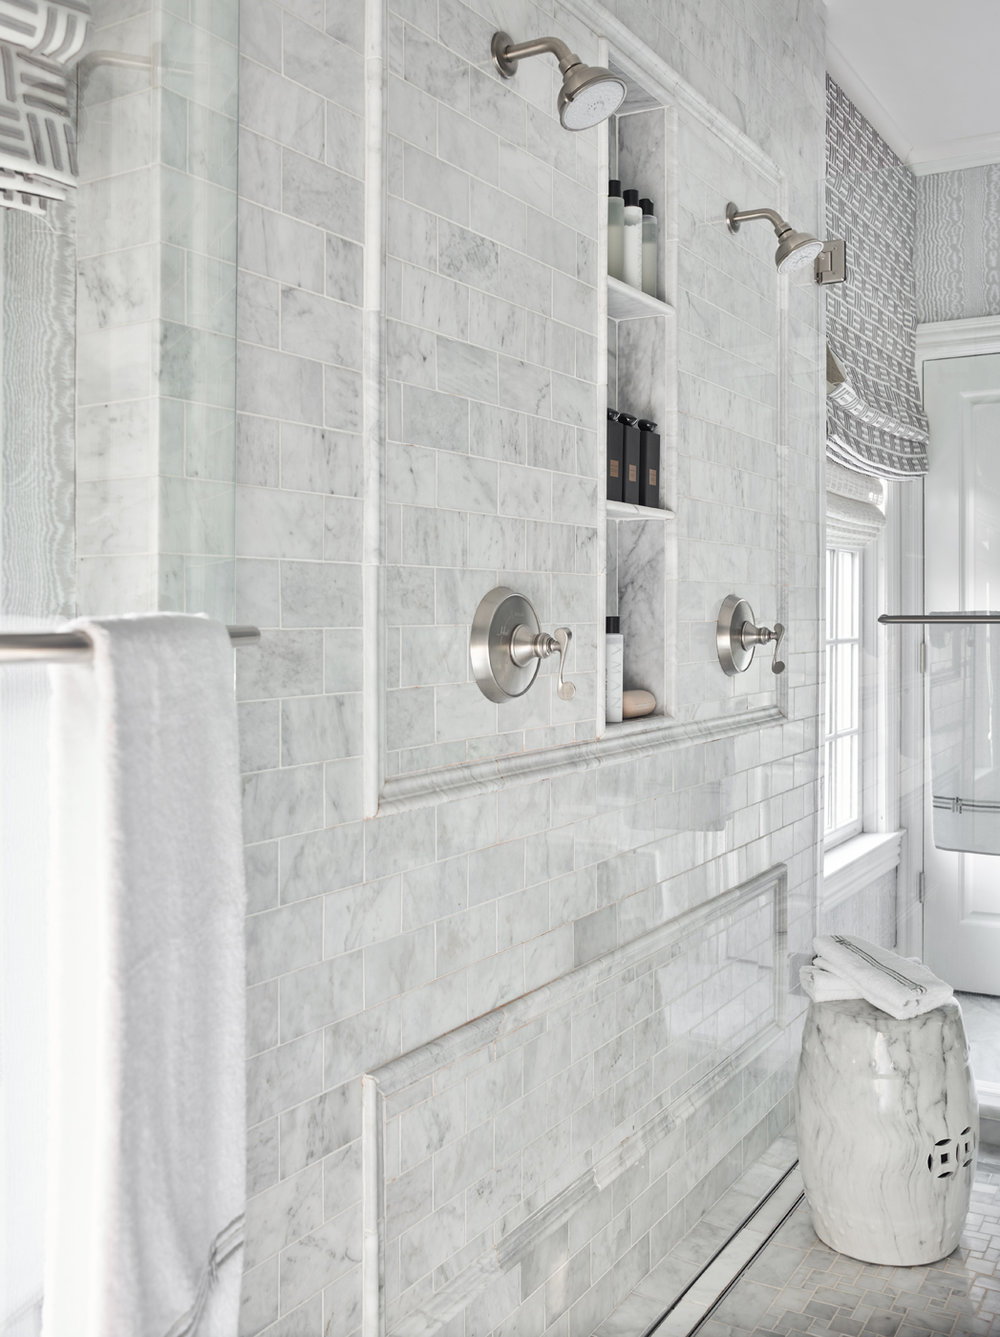 Bathroom shower detail with white marble tiles accented with marble panel molding | Savage Interior Design